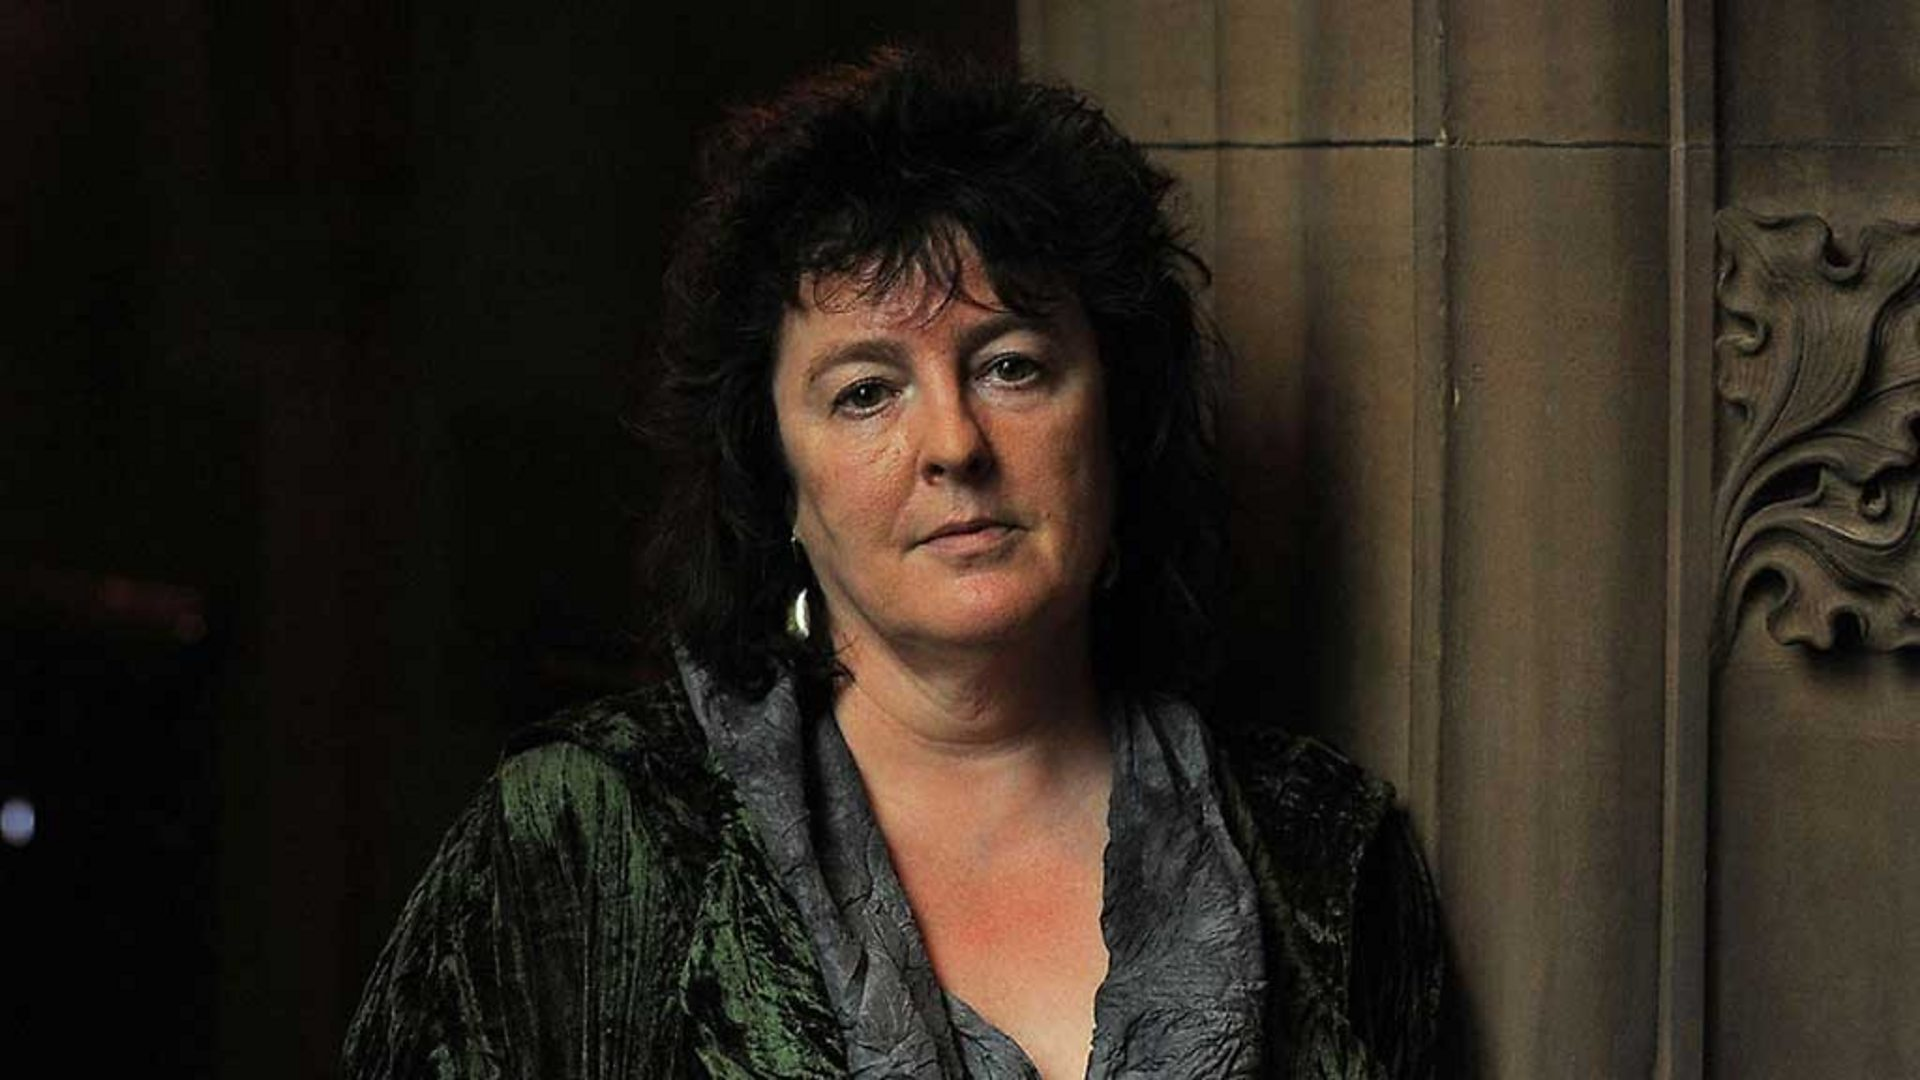 shooting stars poem carol ann duffy essay Master thesis on performance appraisal shooting stars essay help college admission essay online  student essay (2) carol ann duffy's poem 'shooting stars' is .